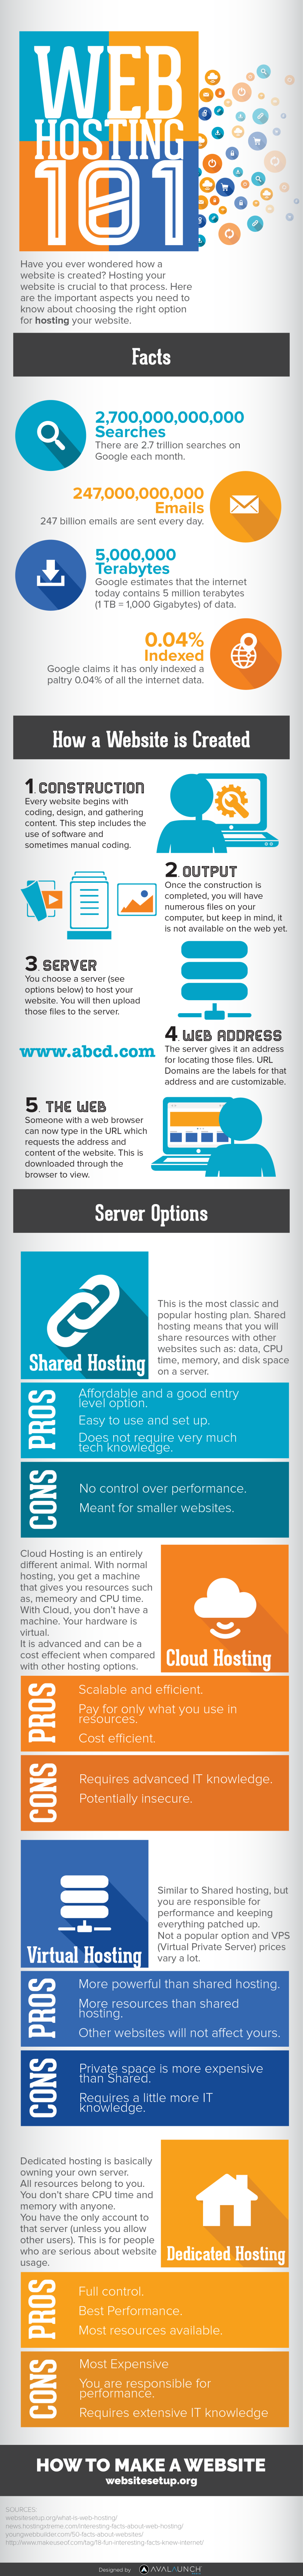 Web Hosting 101 - What You Need To Know